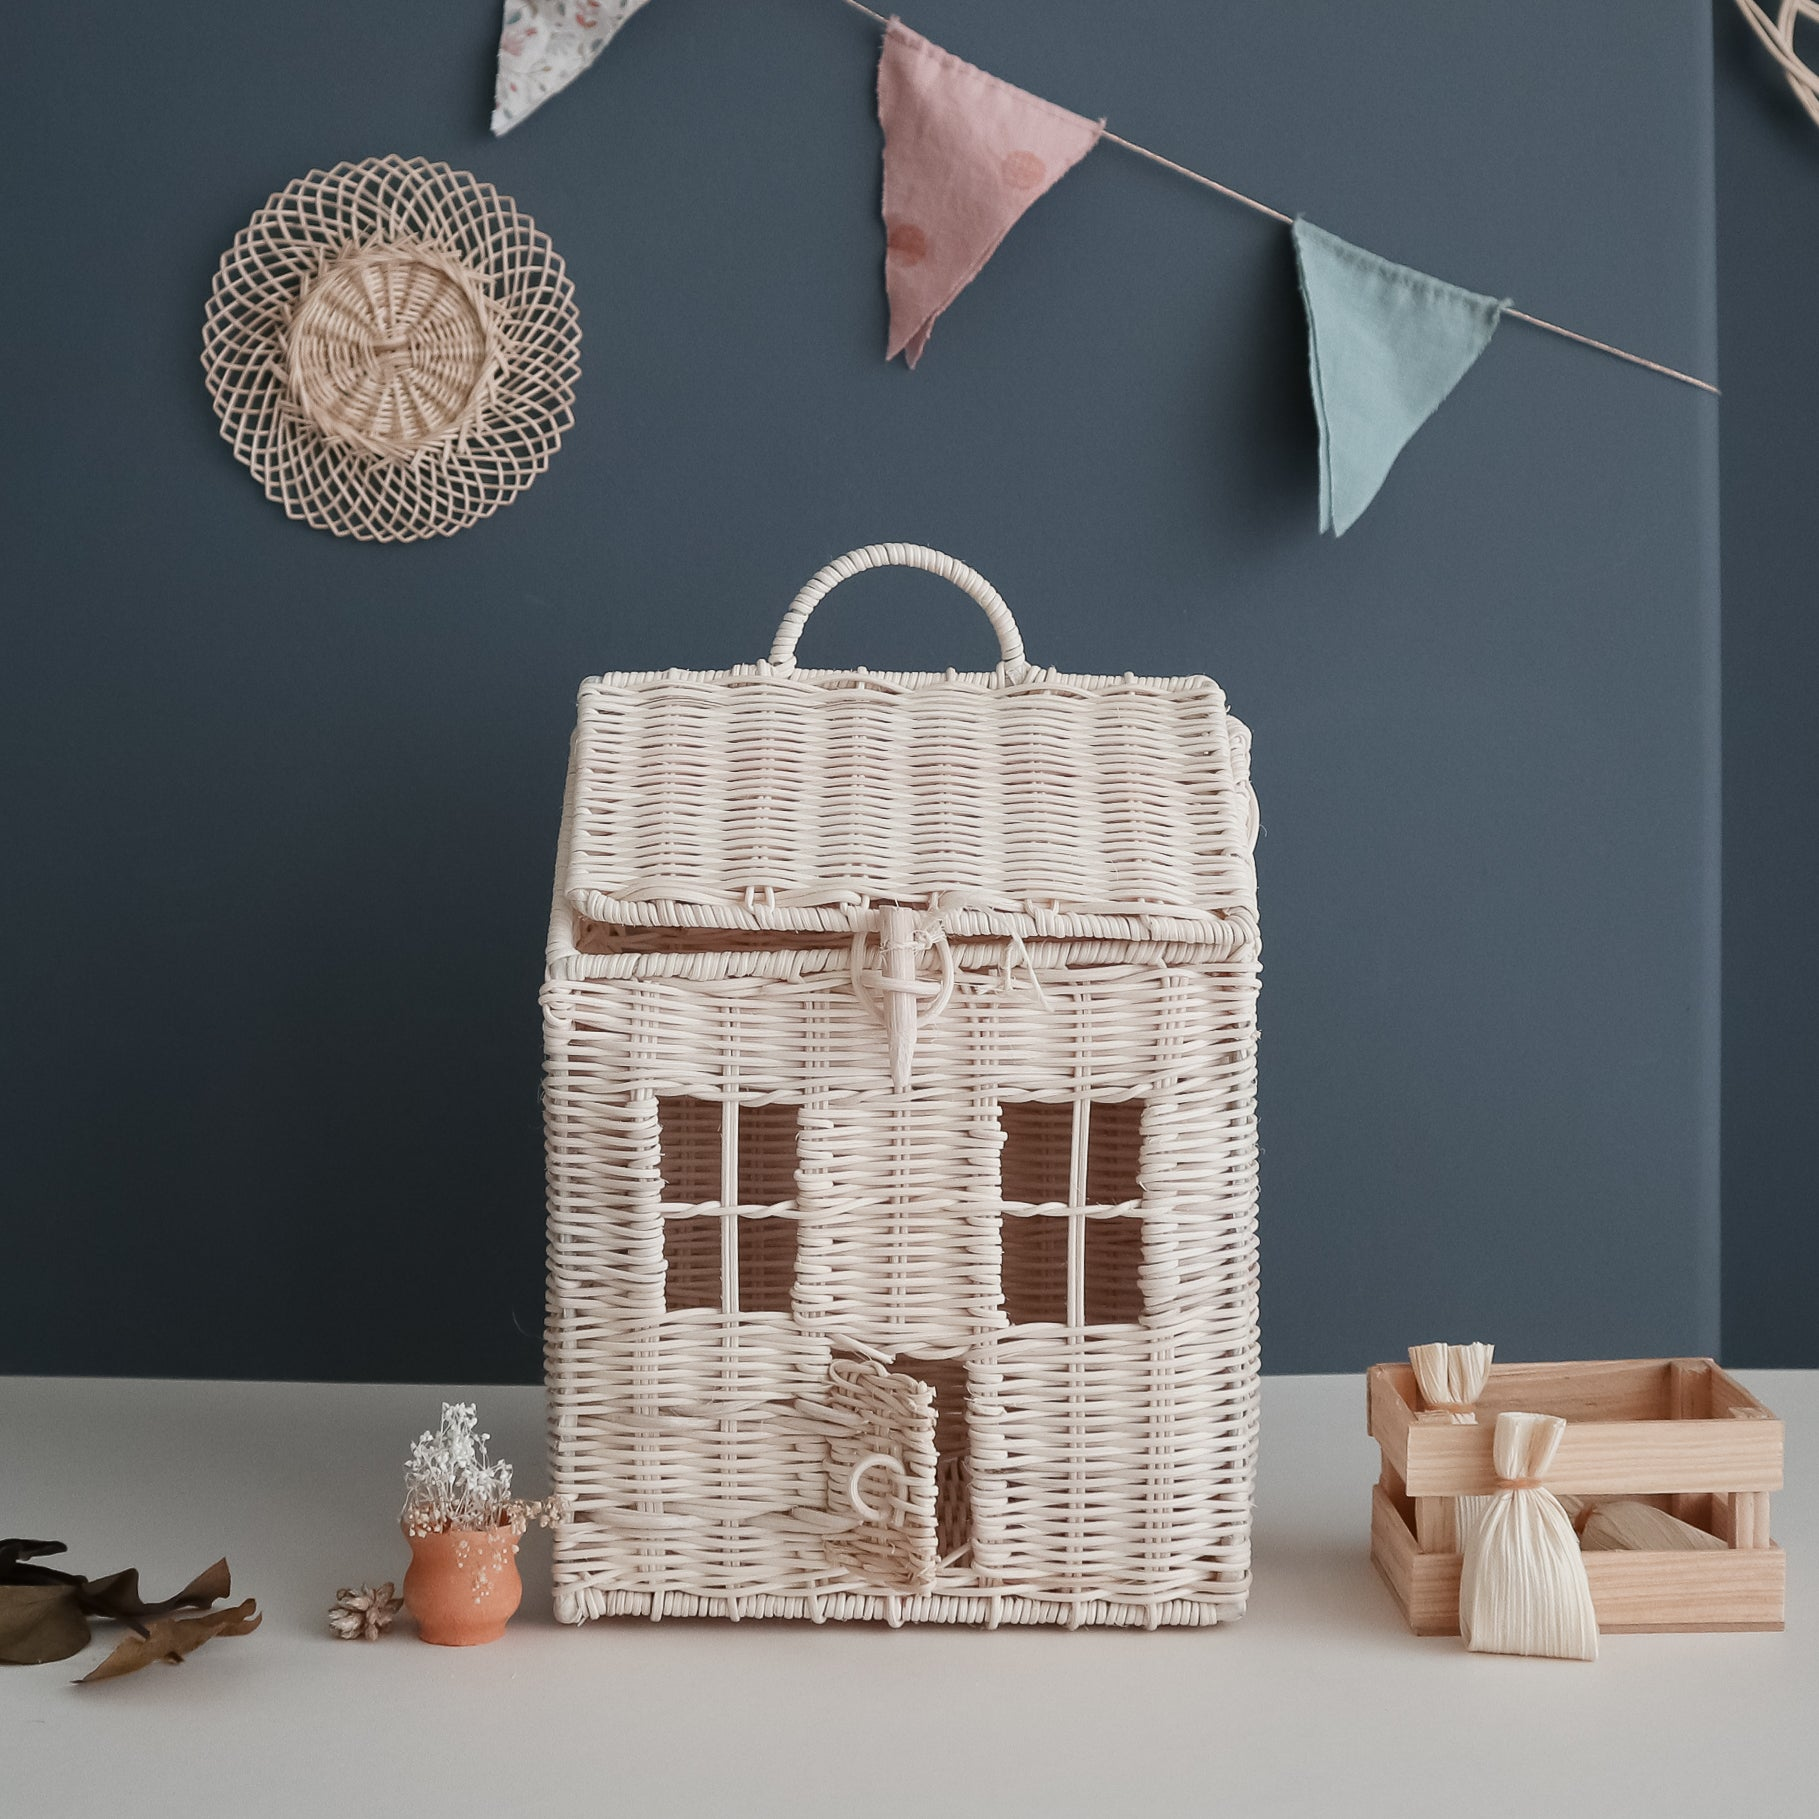 wicker doll house coocneh